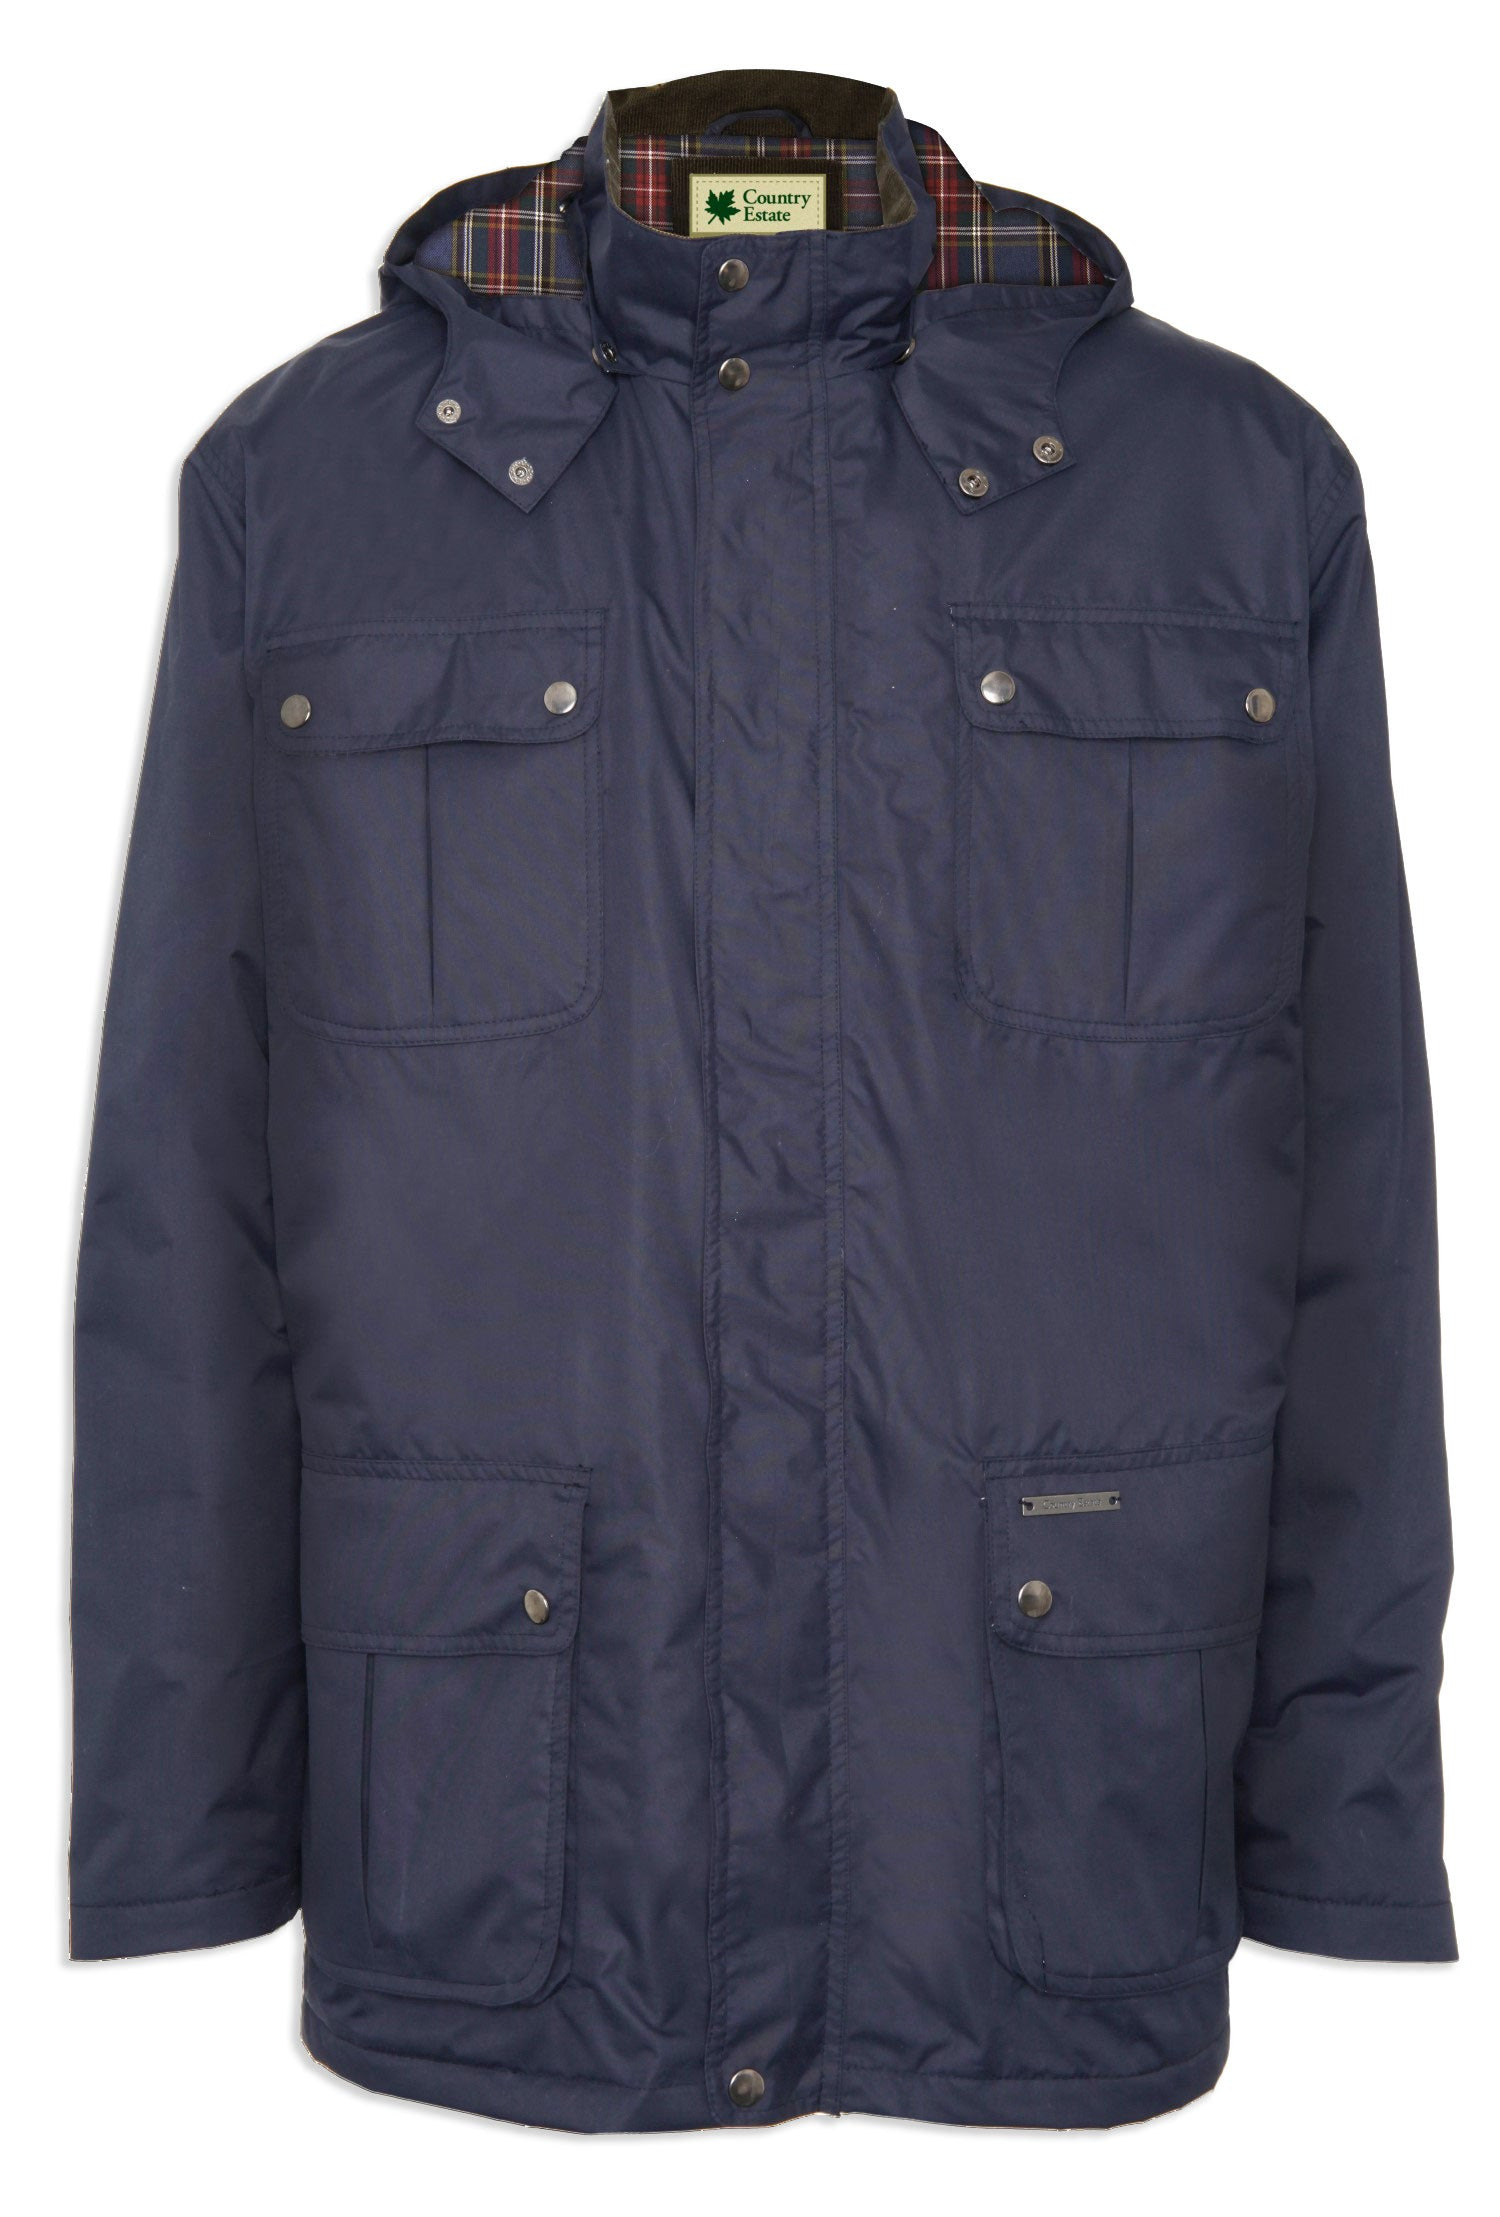 Champion Balmoral Waterproof Jacket | Navy